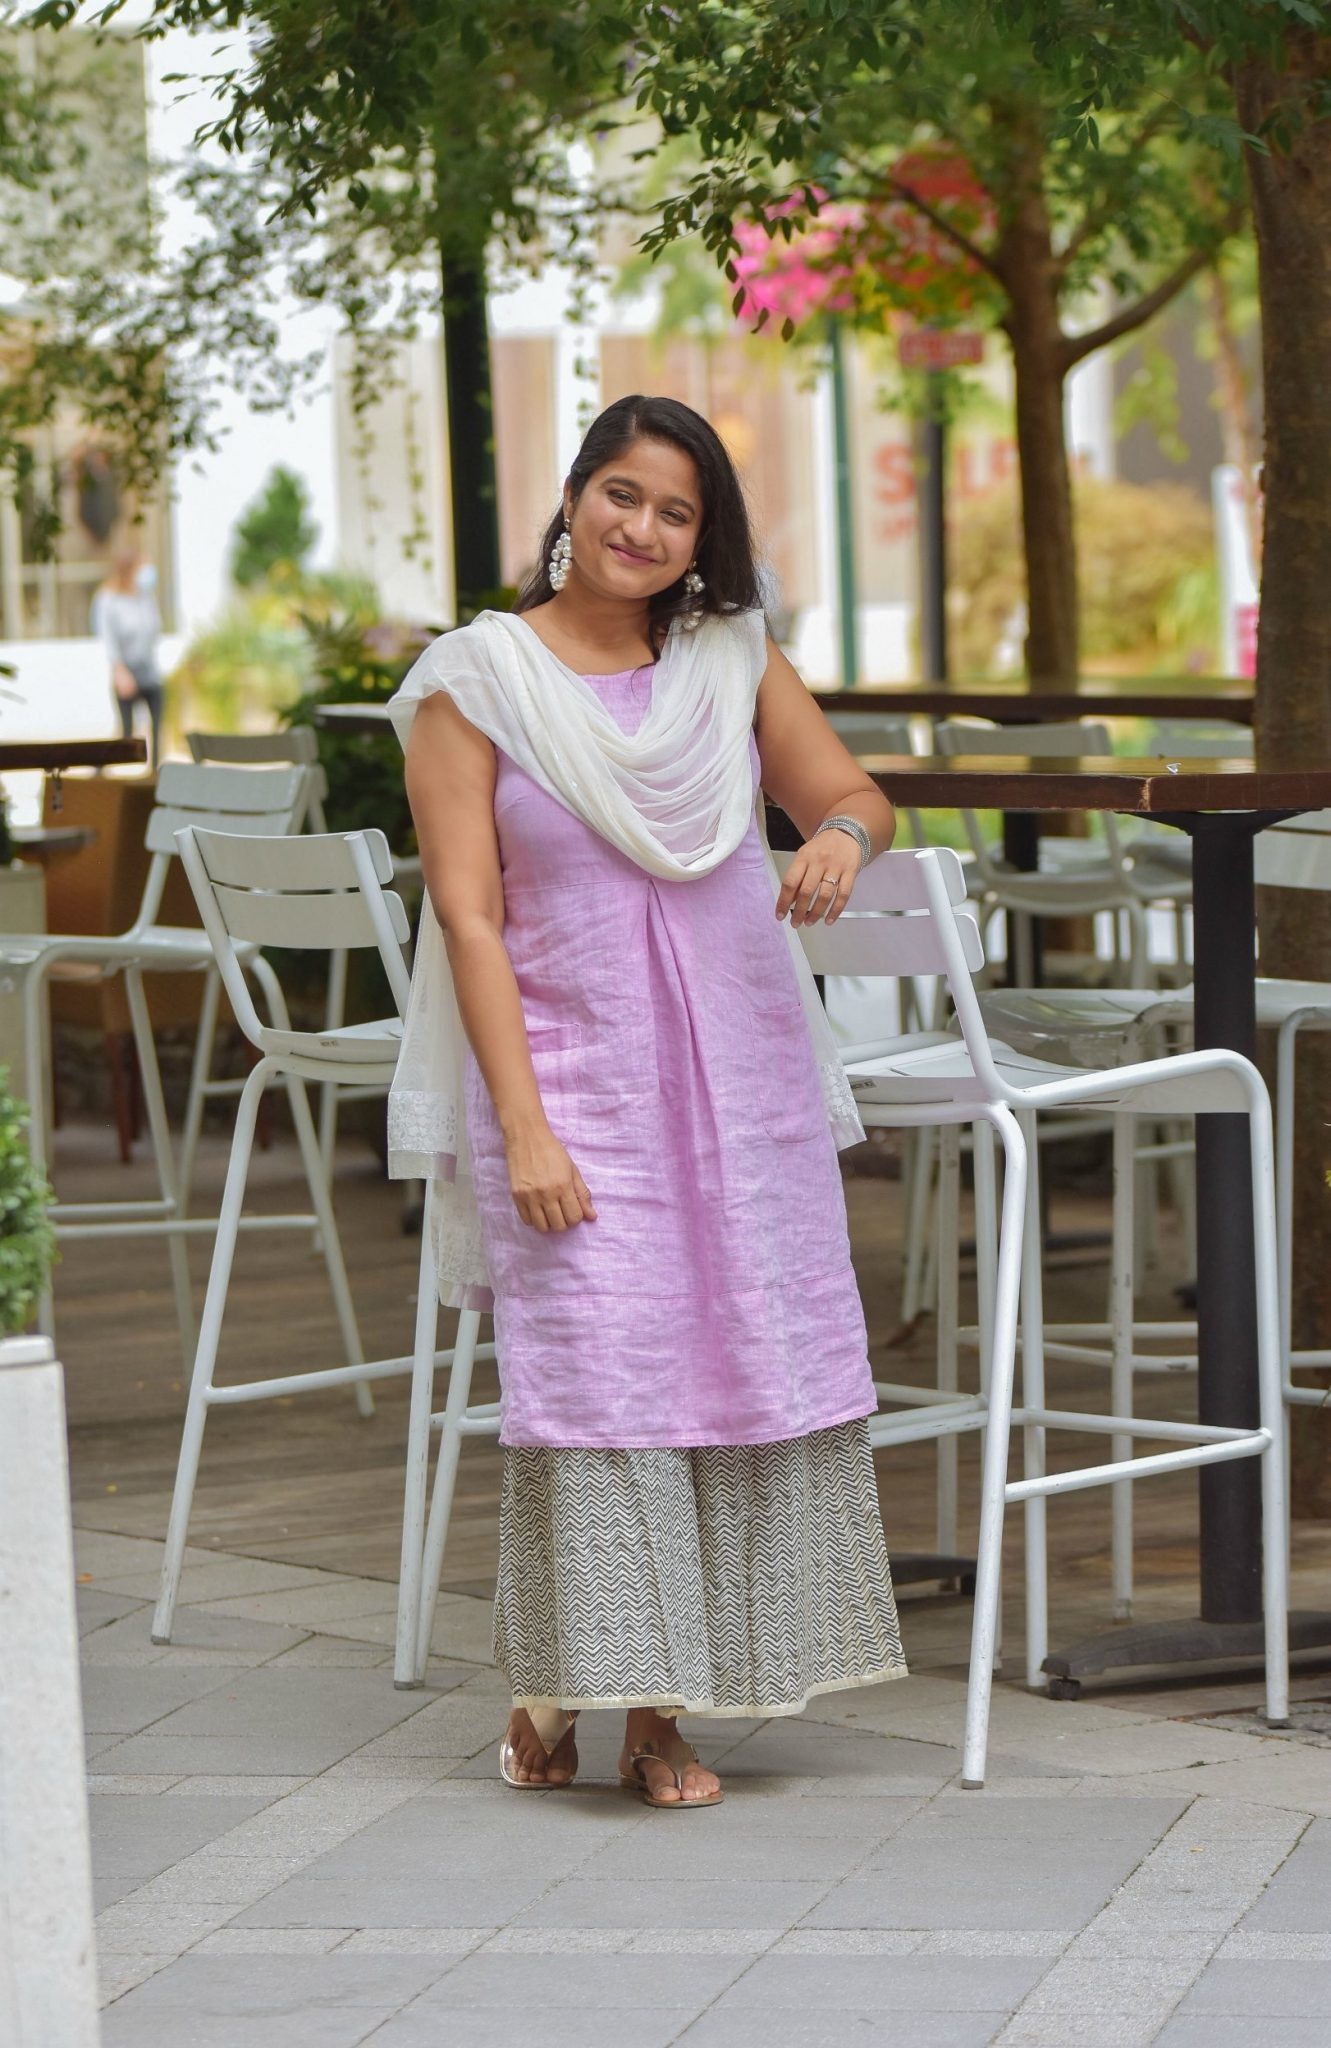 Wearing J.Jill Pleated Knit A-Line Dress, Wide leg pant, Pearl large hoops, White dupatta | Indo Western by popular Maryland modest fashion blog, Dreaming Loud: image of a woman wearing an Indo Wester outfit with a purple linen dress, culottes, sliver sandals, pearl hoop earrings, and a silk dupatta.